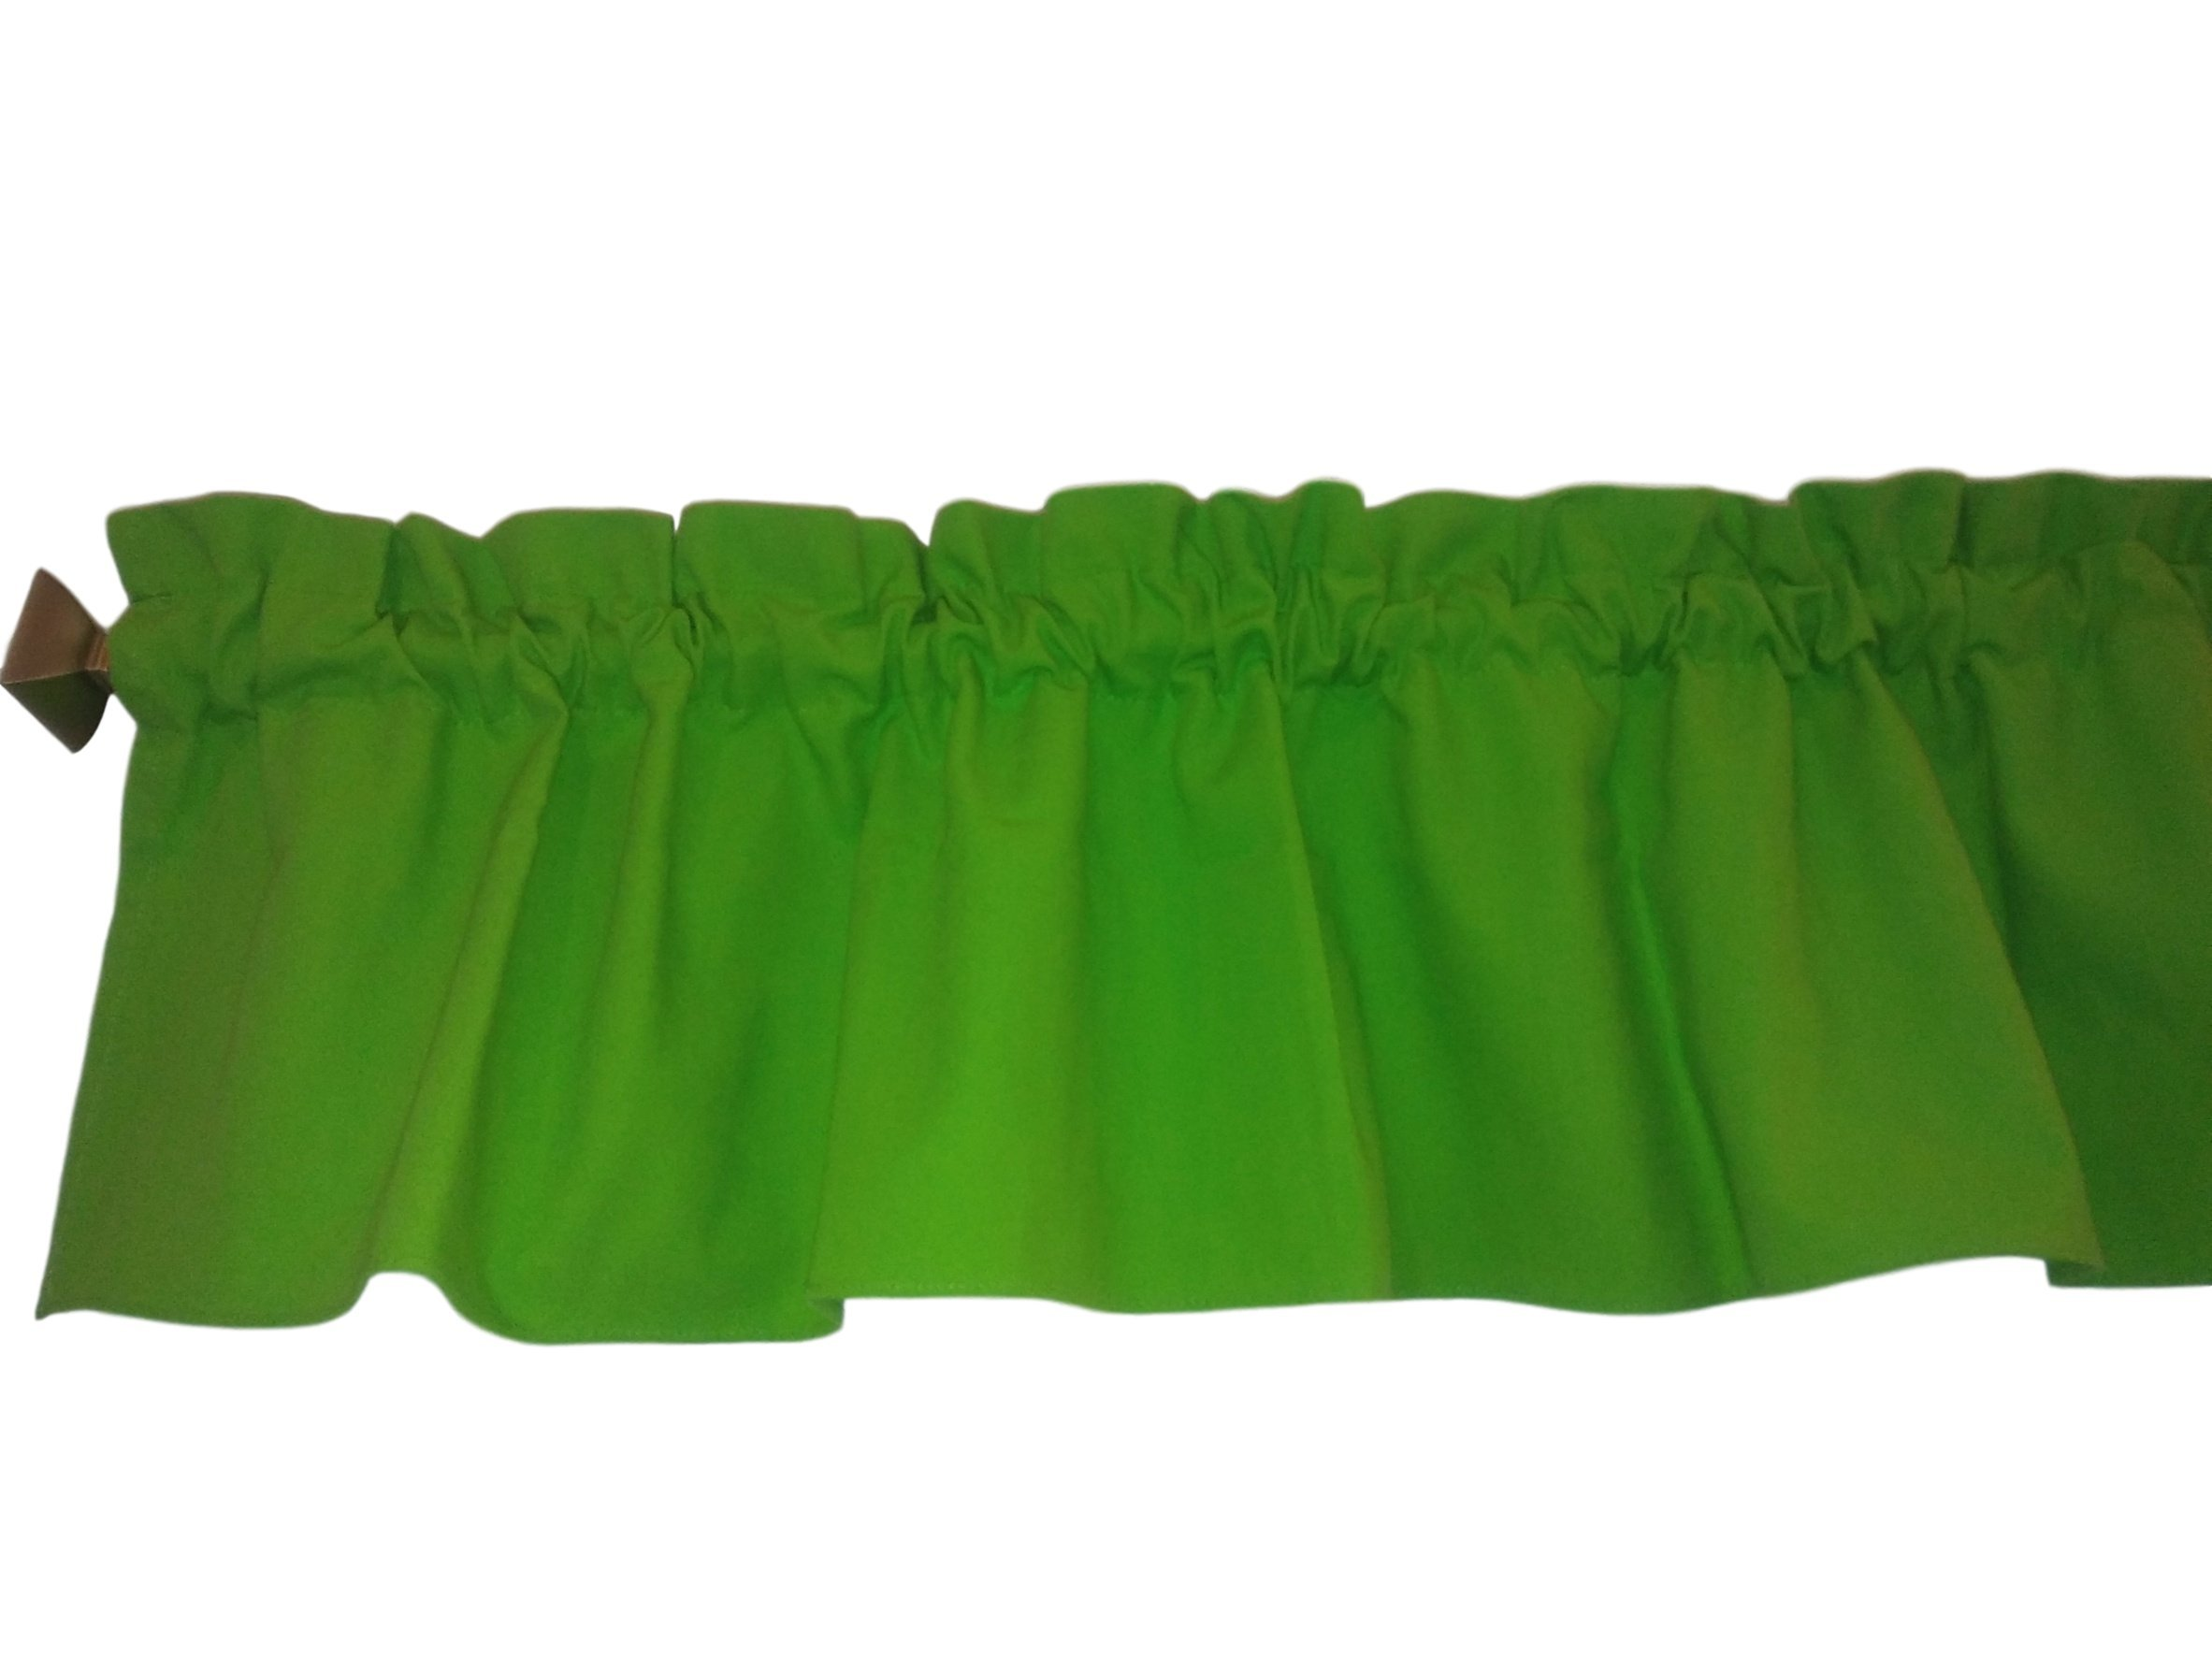 Ruffle Lime Green Valance Curtain Solid Color. Window treatment. Window Decor. Kitchen, classroom, Kids, wide 56'' fits standard curtain rod. Chartreuse,